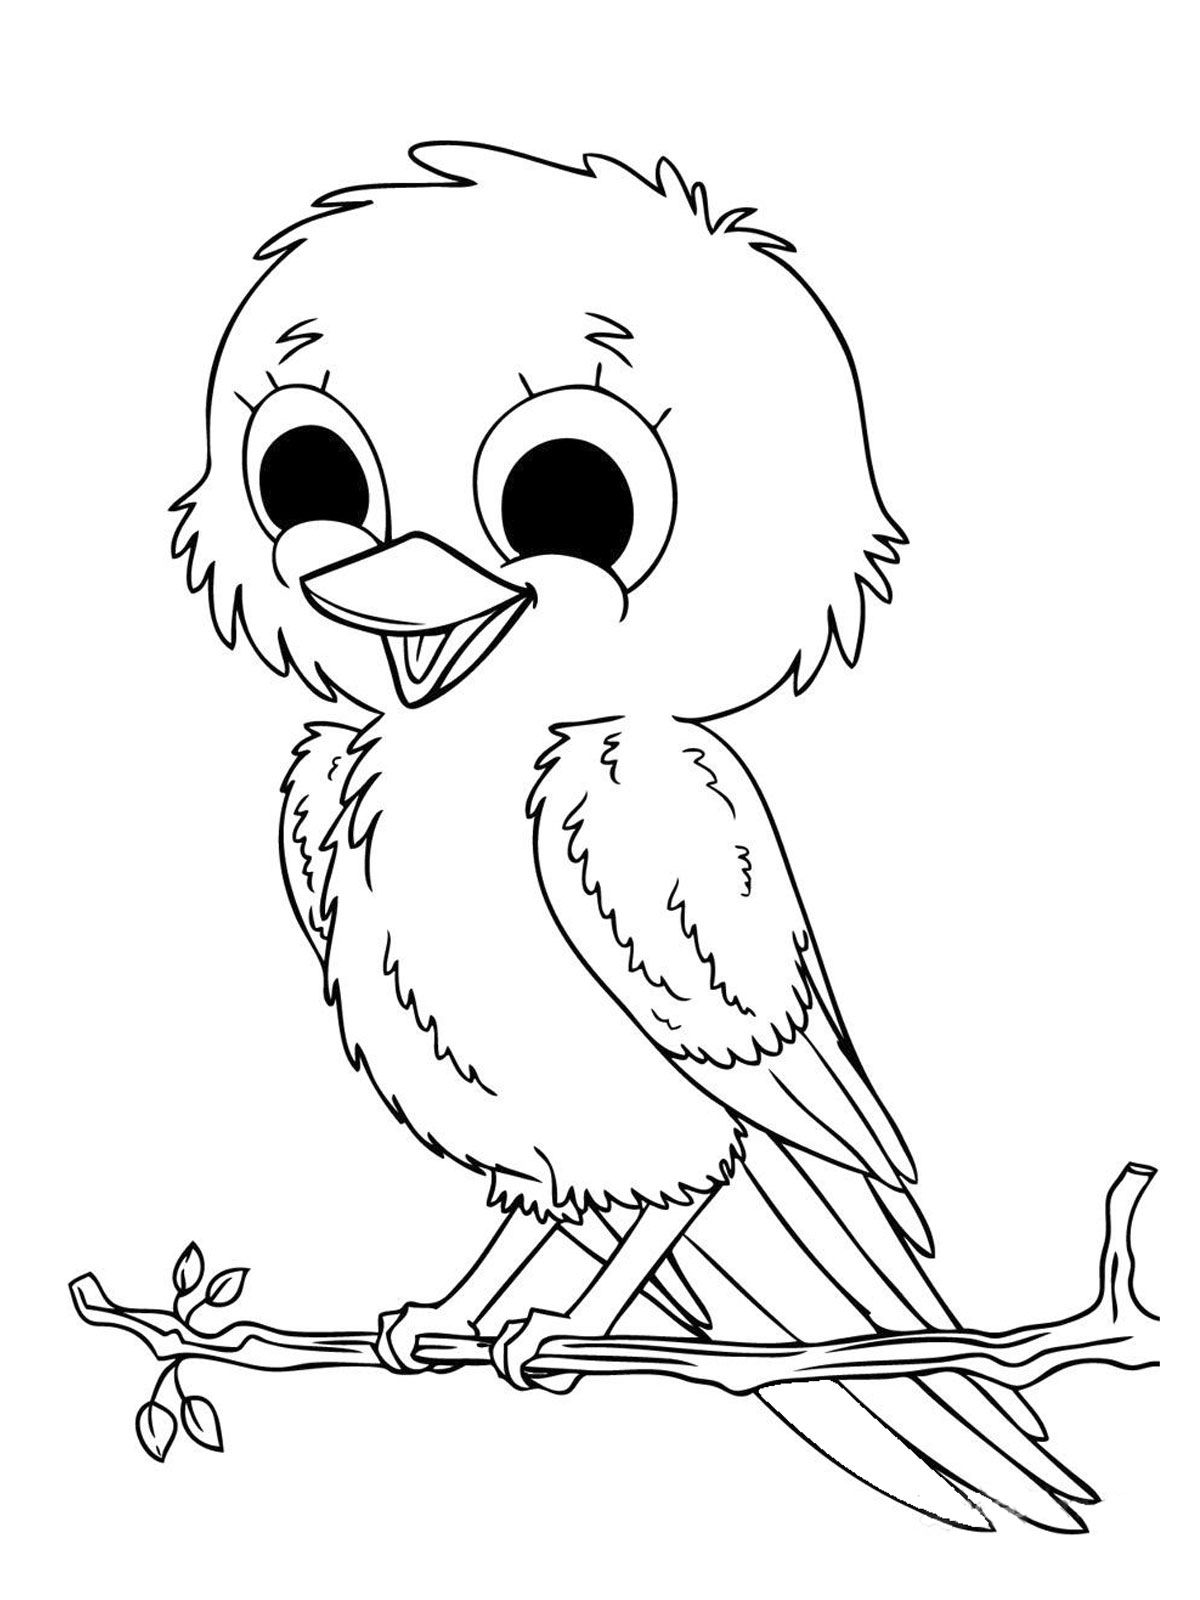 Baby Animal Coloring Pages Bird coloring pages, Animal